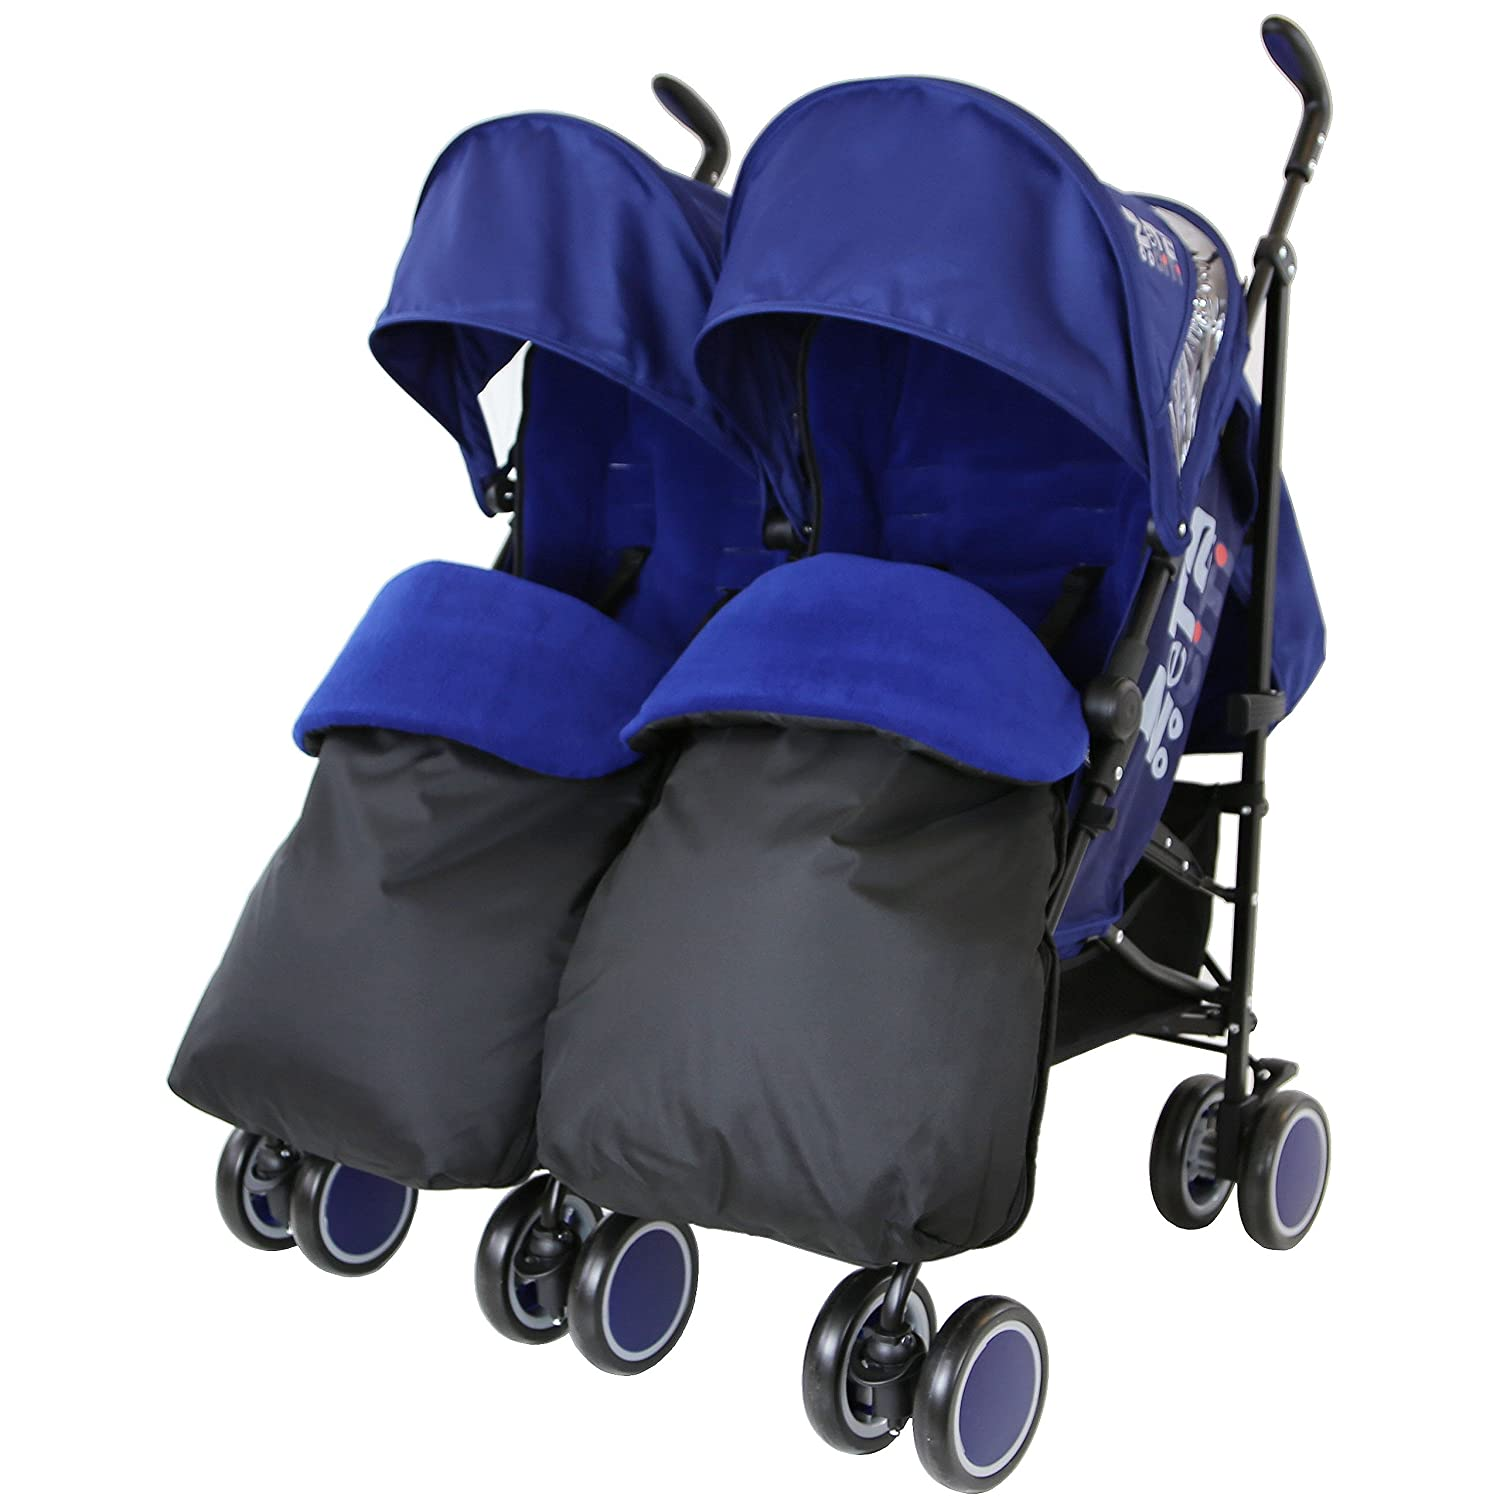 Zeta Citi TWIN Stroller Buggy Pushchair - Navy (Dark Blue) Double Stroller Complete With FootMuffs Baby TravelTM